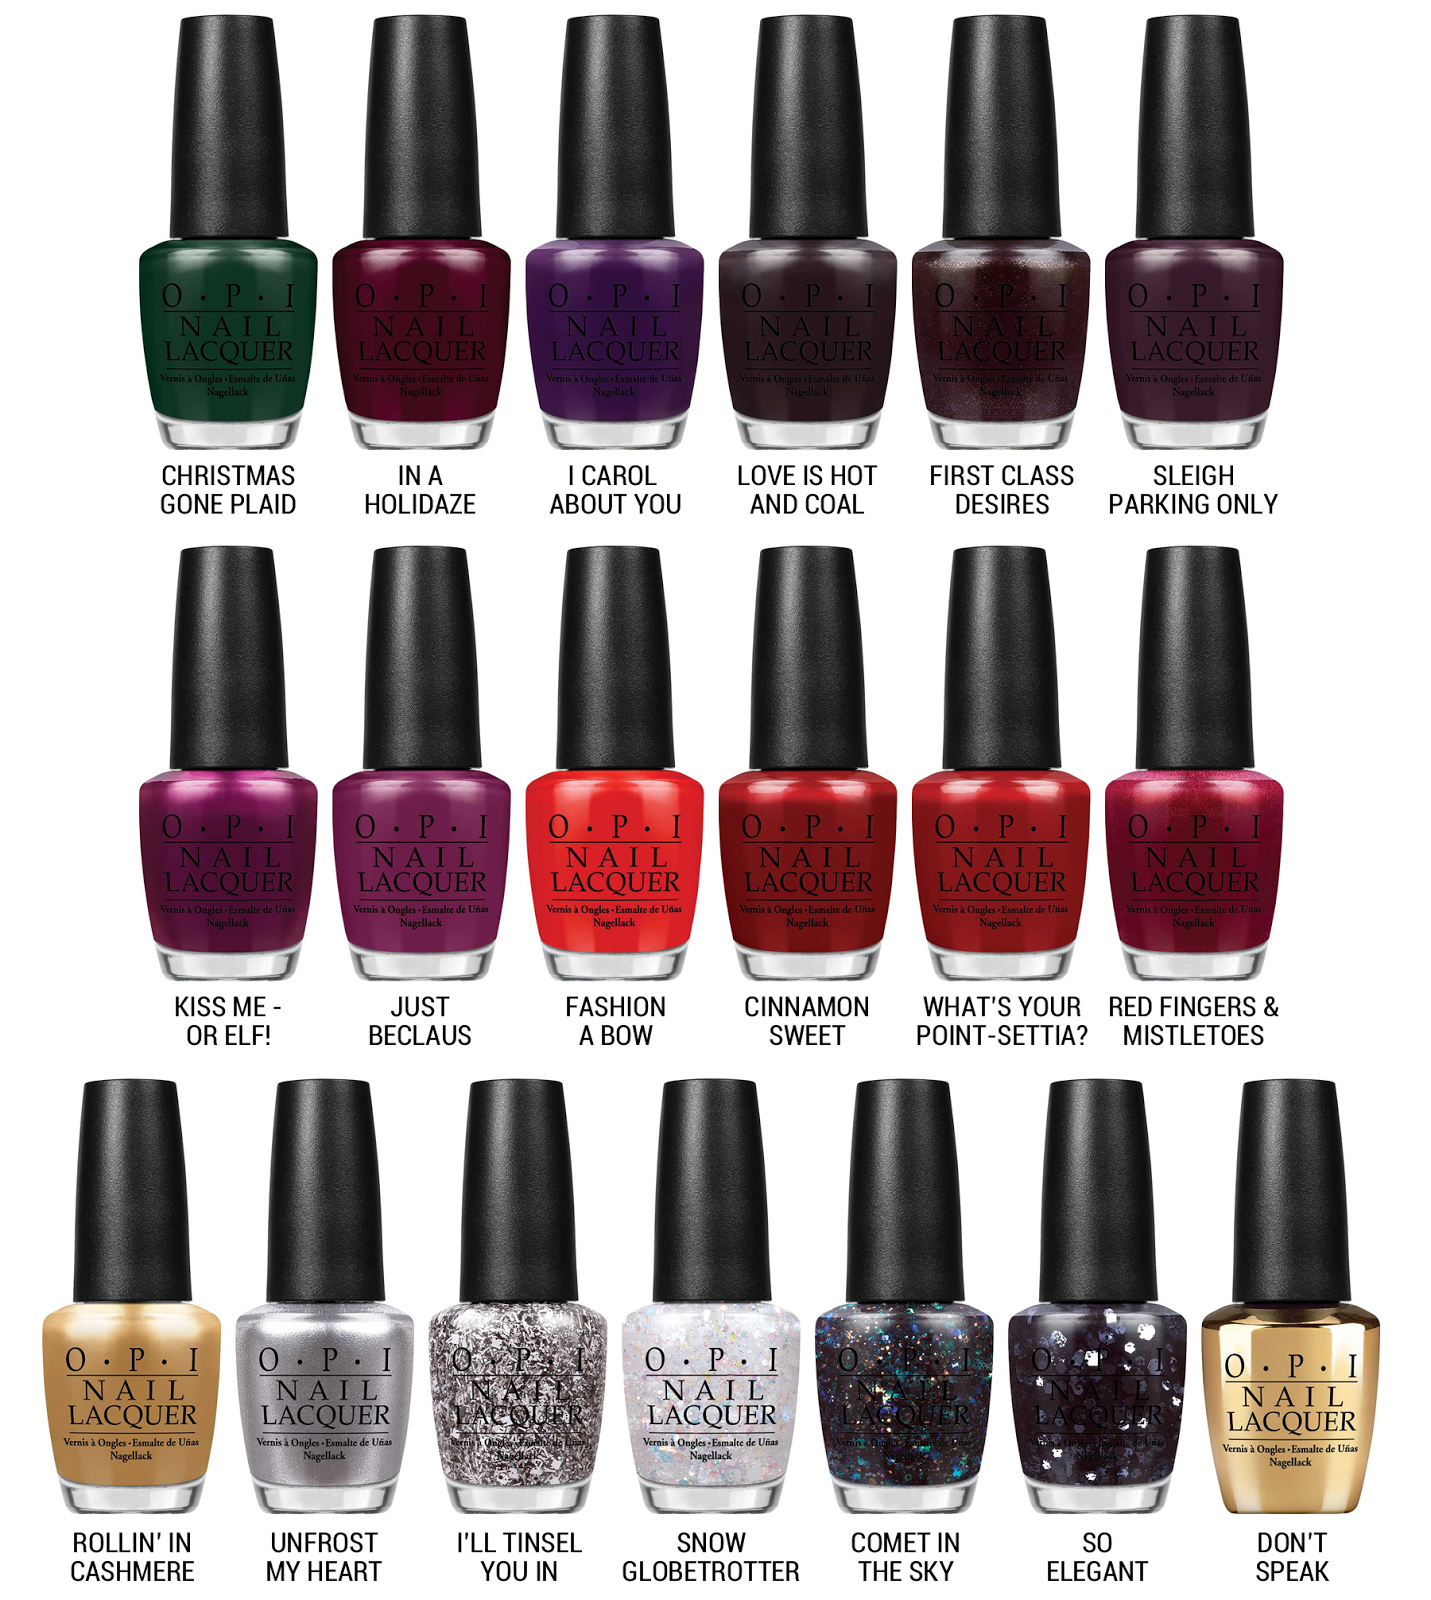 OPI x Gwen Stefani for Holiday 2014 via @chalkboardnails